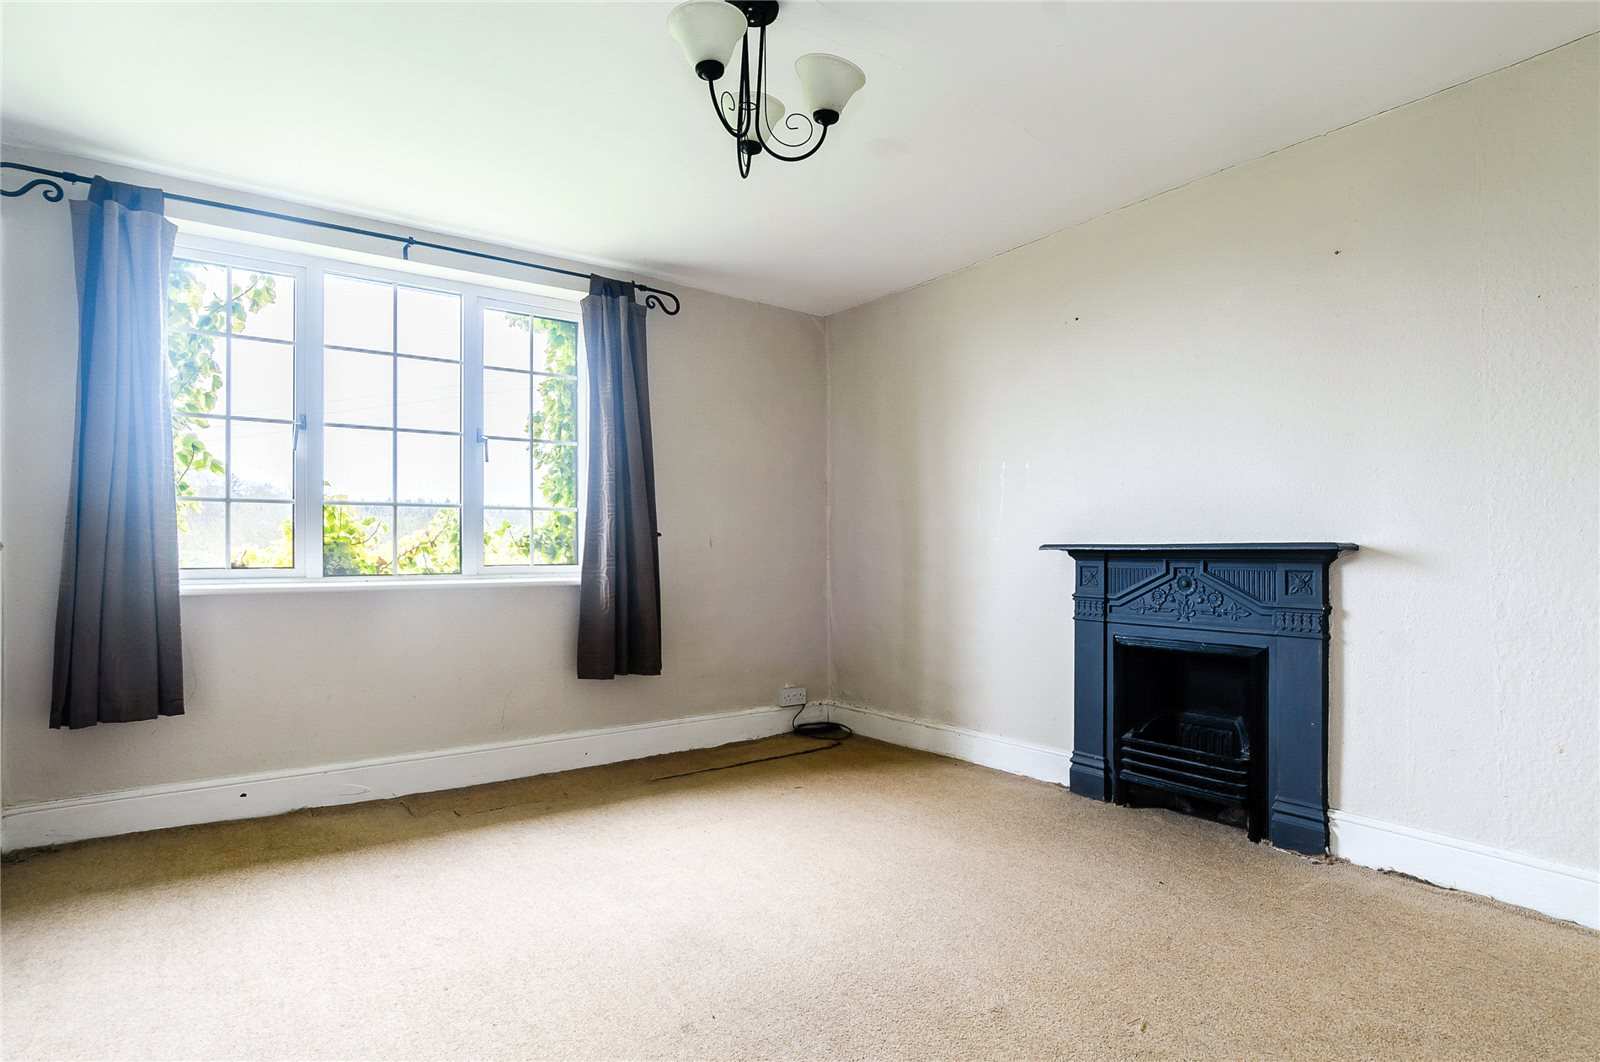 Additional photo for property listing at 1 & 2 Coxlands Cottages, Burnt Hill Road, Stanford Dingley, Reading, RG7 Reading, Inglaterra